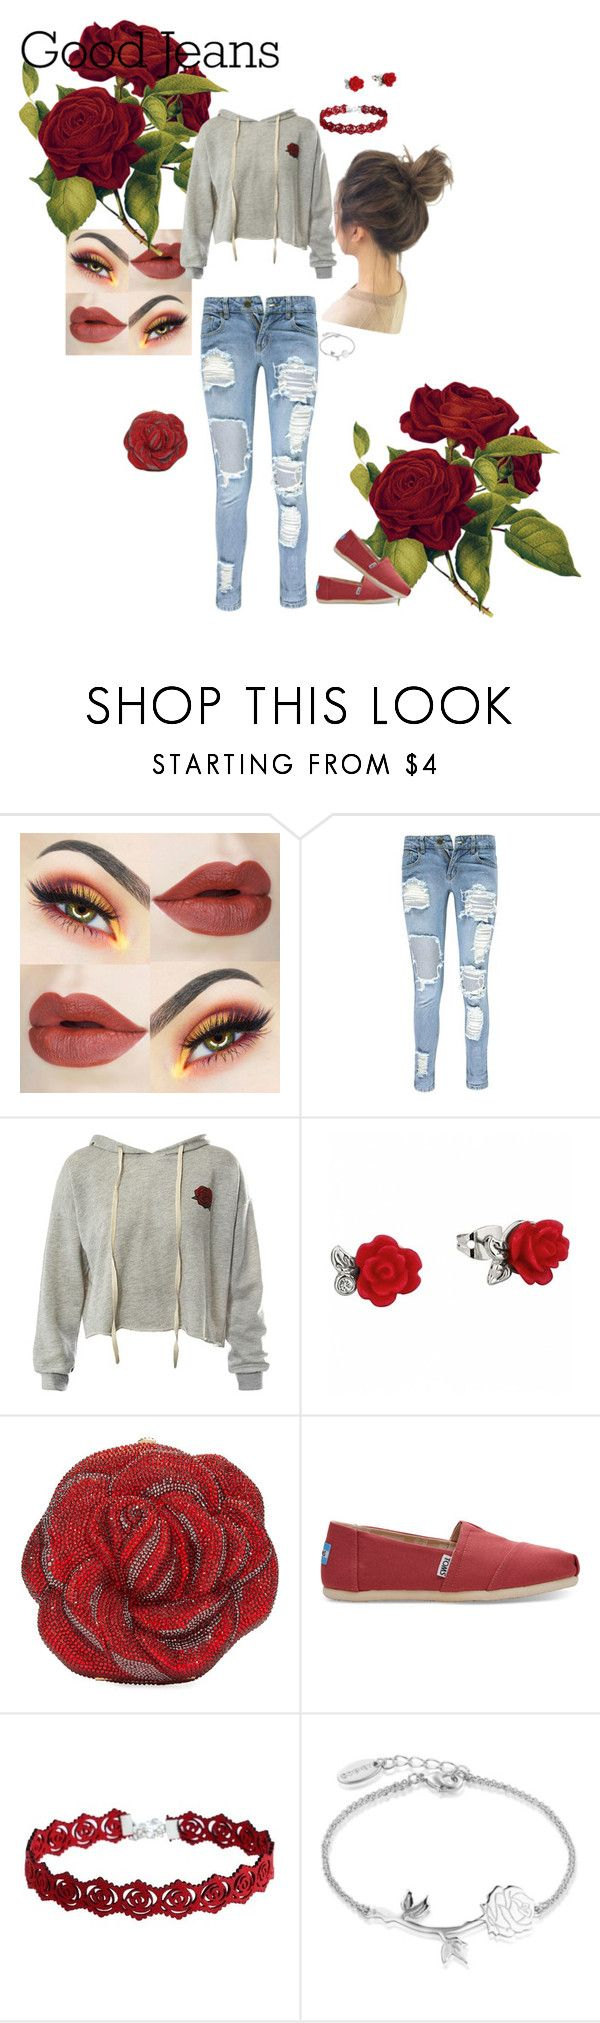 """""""distressing rose"""" by yunablain ❤ liked on Polyvore featuring Boohoo, Sans Souci, Judith Leiber, TOMS, Disney and distresseddenim"""